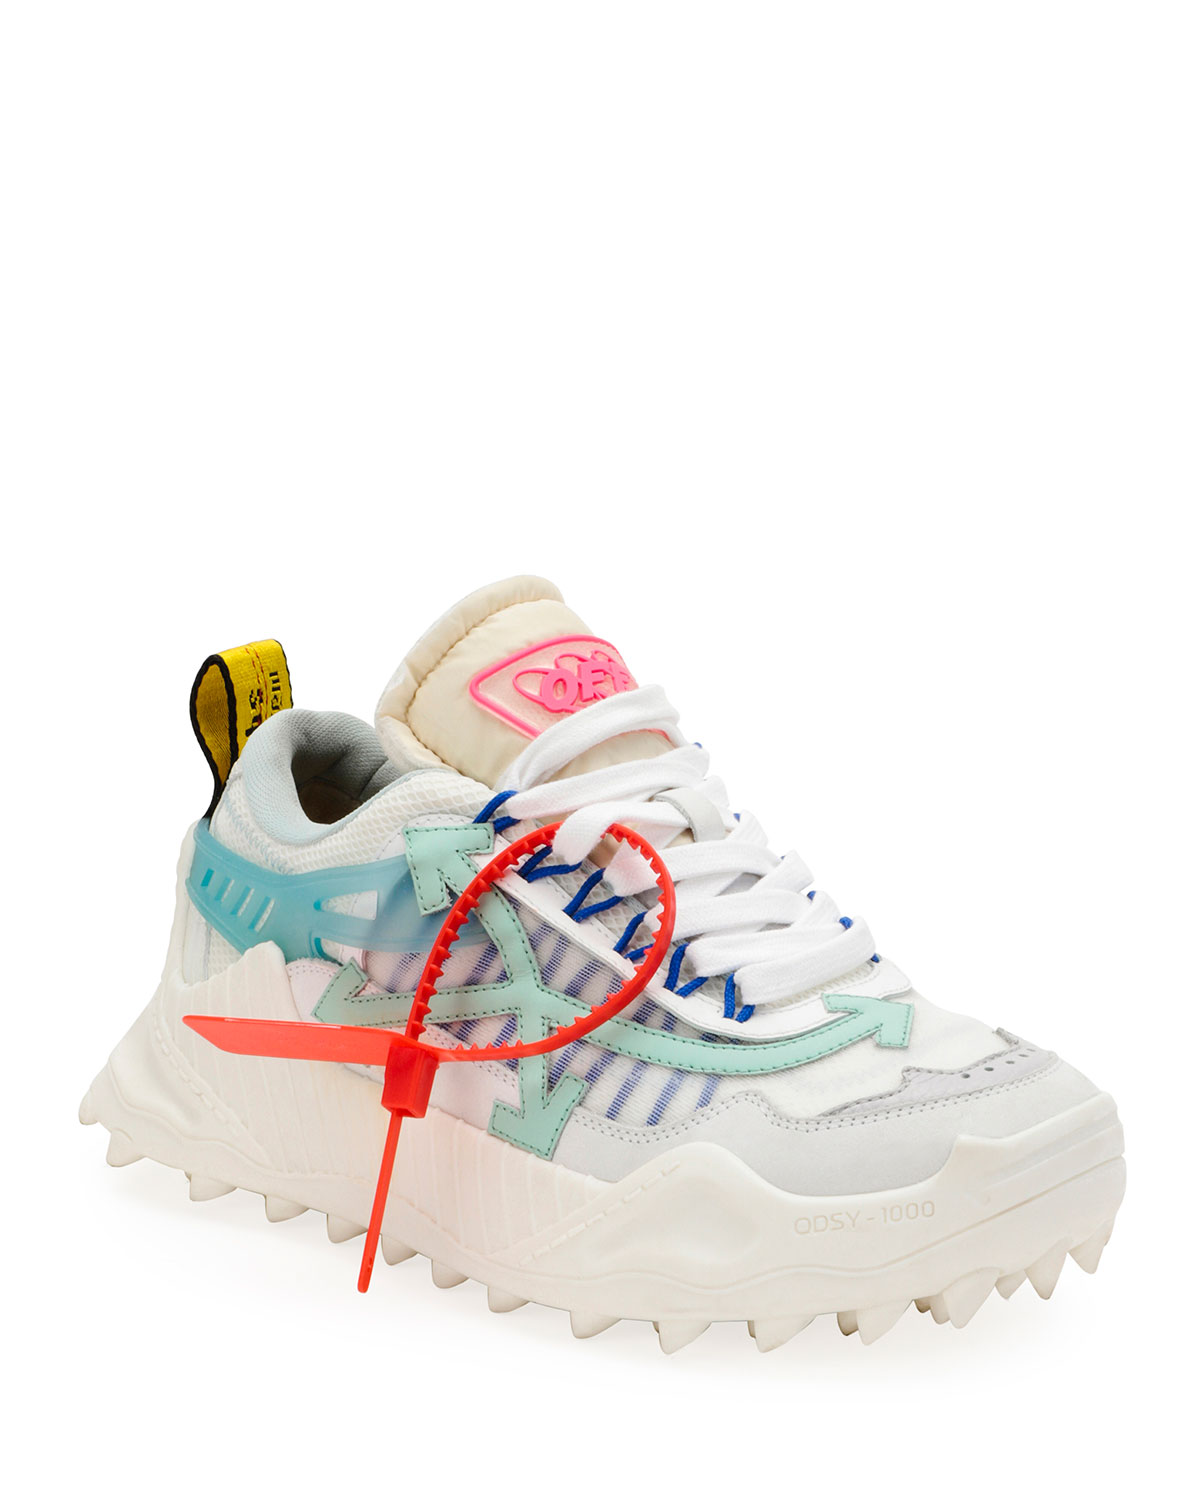 Off-White Odsy Colorblock Mesh Sneakers